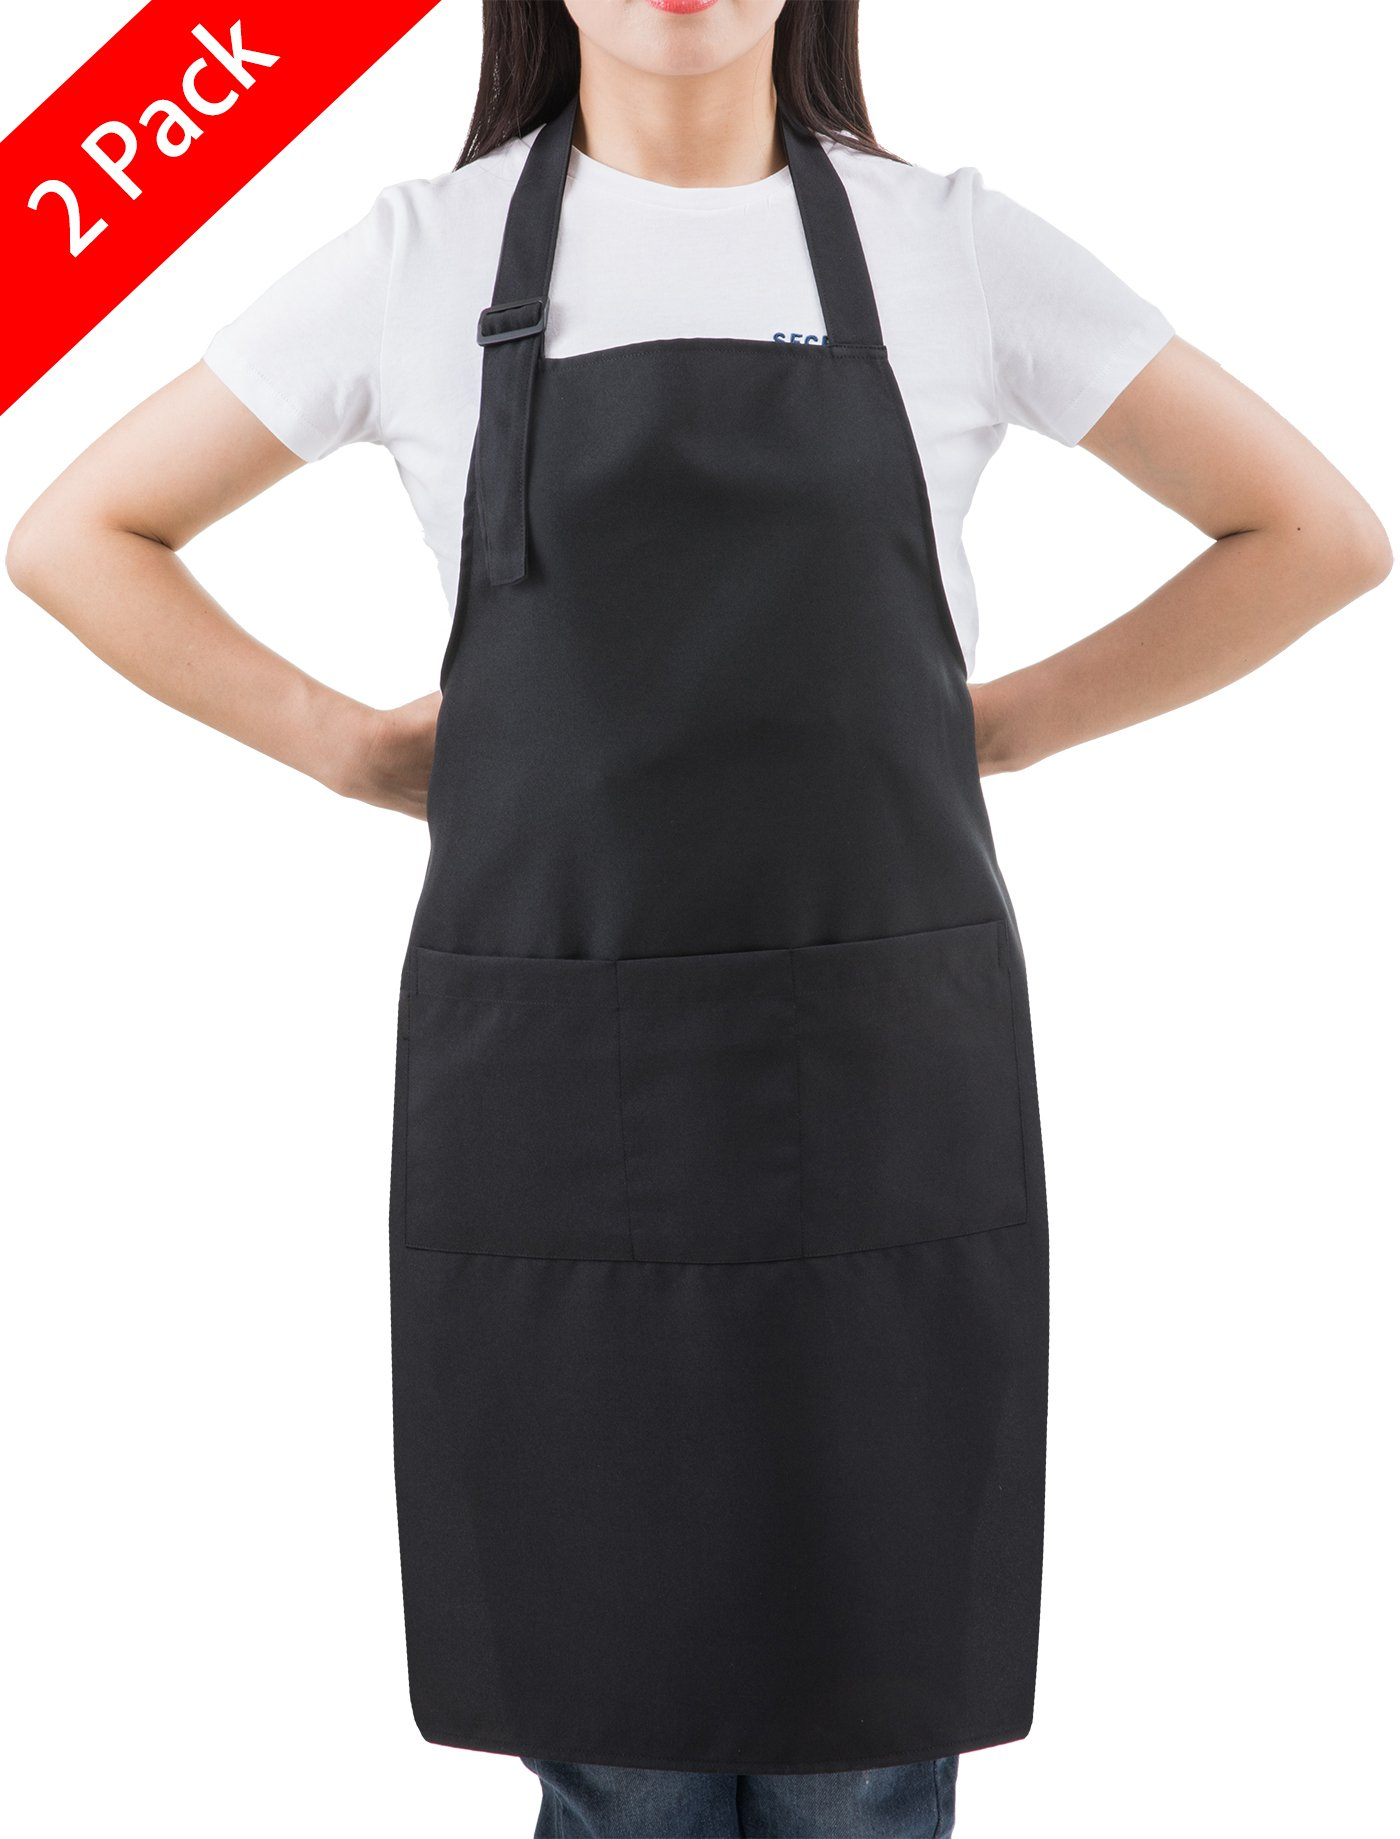 SEW UR LIFE (2 set Black Professional Resist Water Adjustable Plus Size Bib Apron 3 Pockets Home Kitchen Garden Restaurant Cafe Bar Pub Bakery for Cooking Chef Baker Servers Craft Unisex